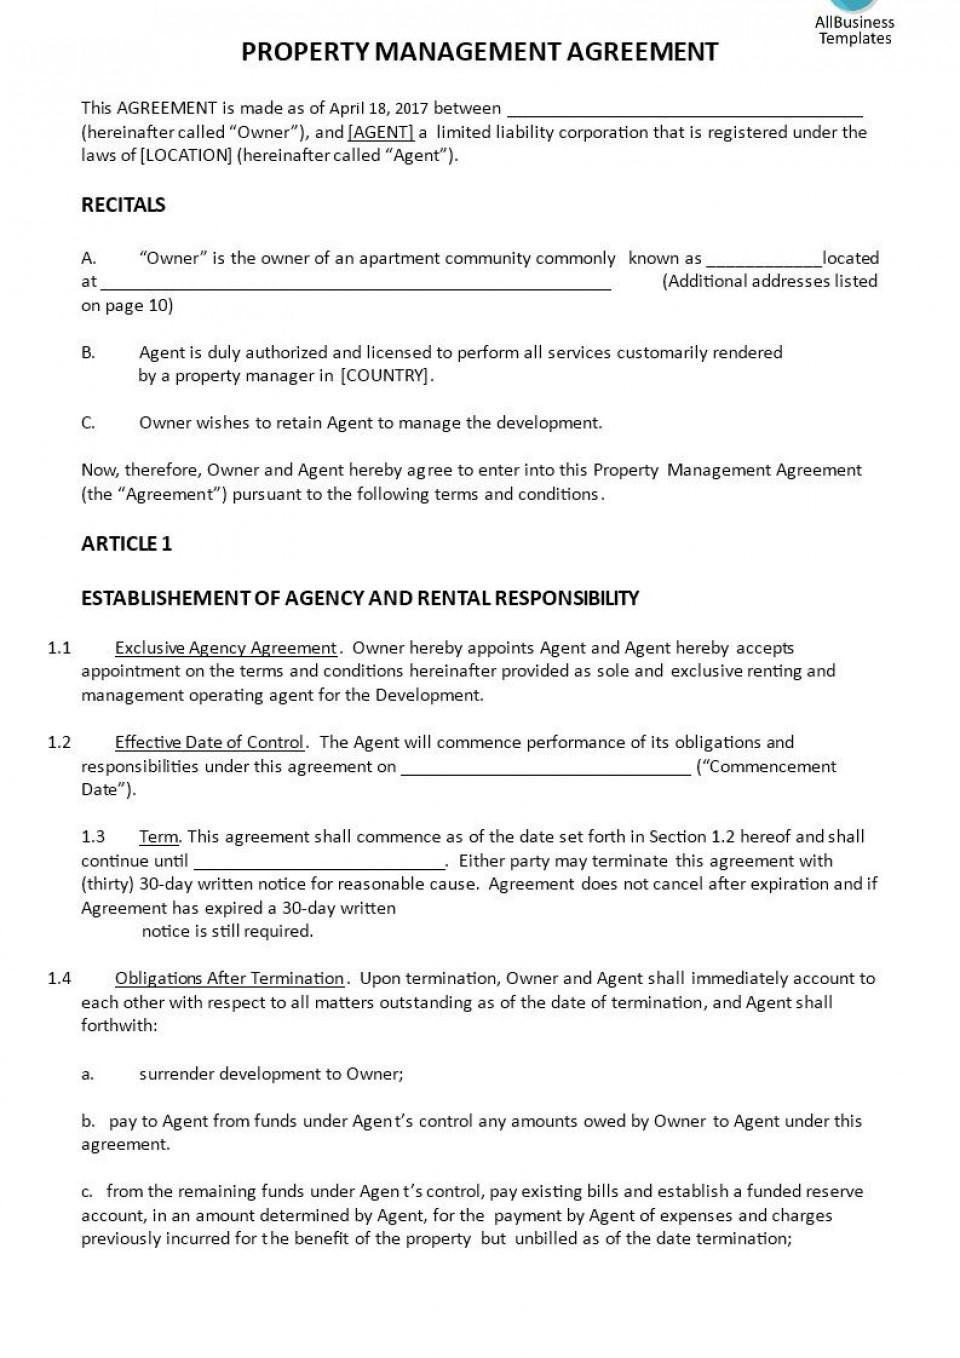 003 Frightening Rental Property Management Contract Sample Highest Quality  Vacation Template960